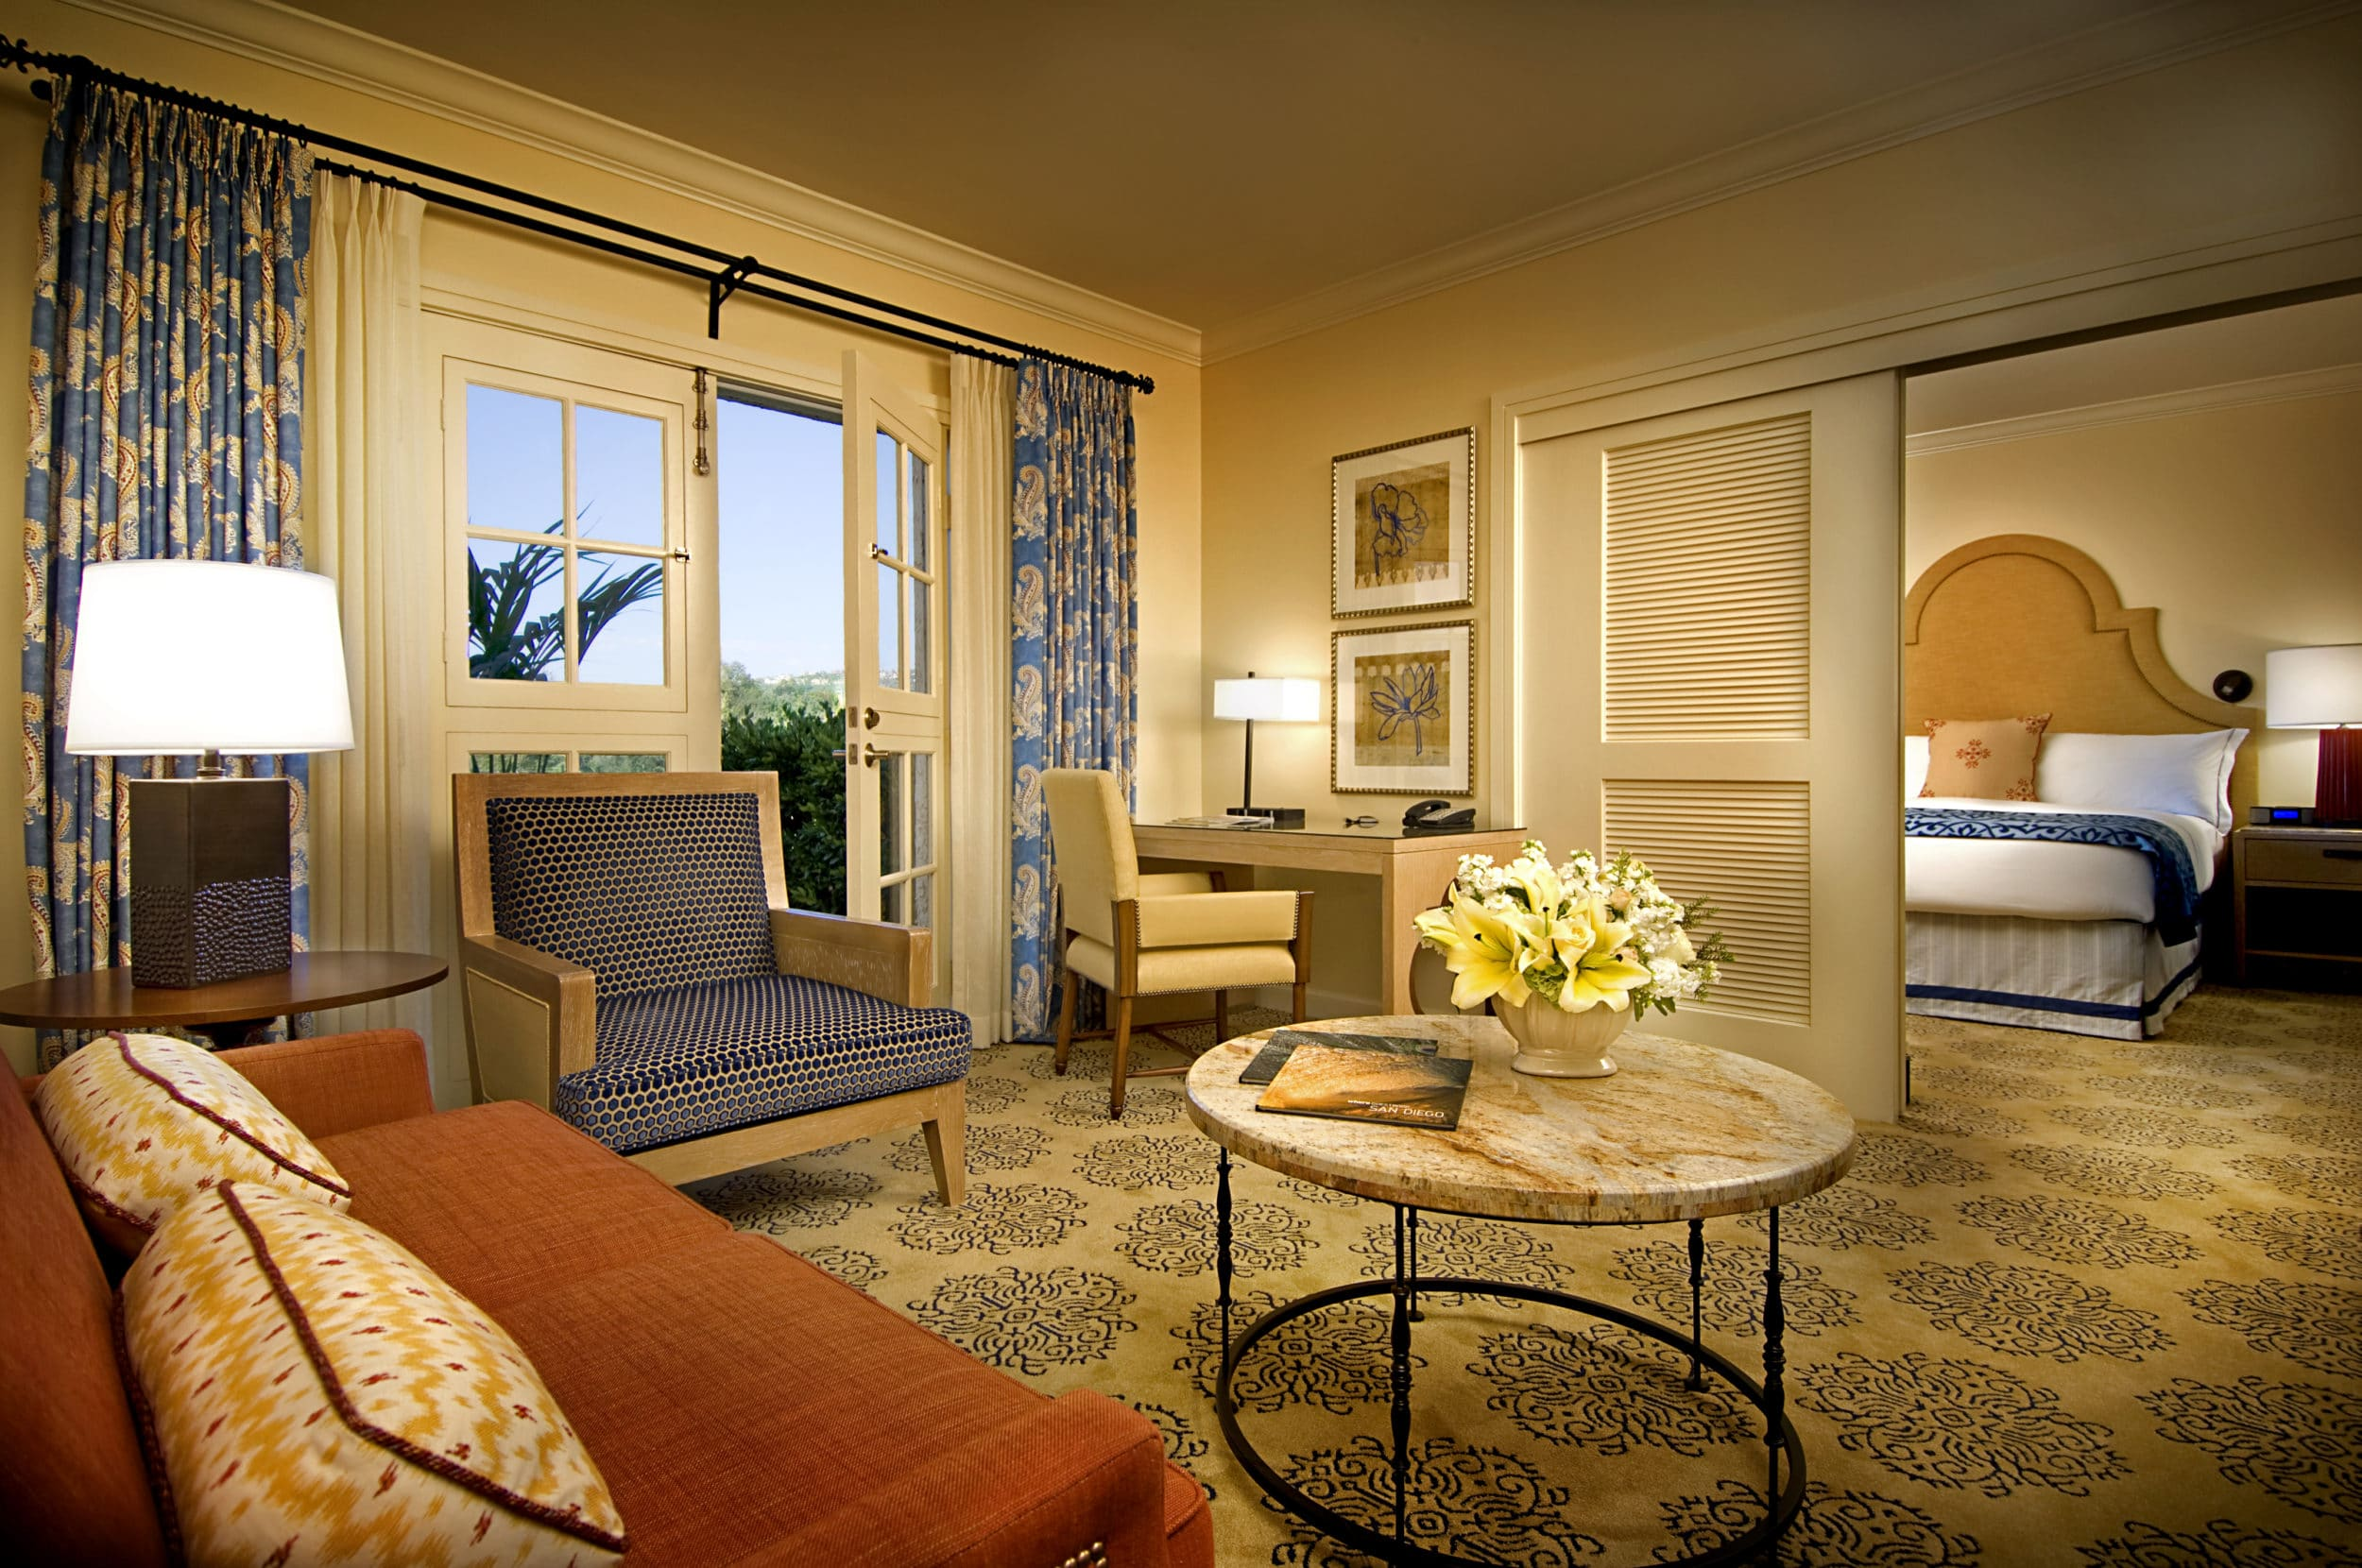 La Costa Suite at Omni La Costa Resort and Spa is popular with families